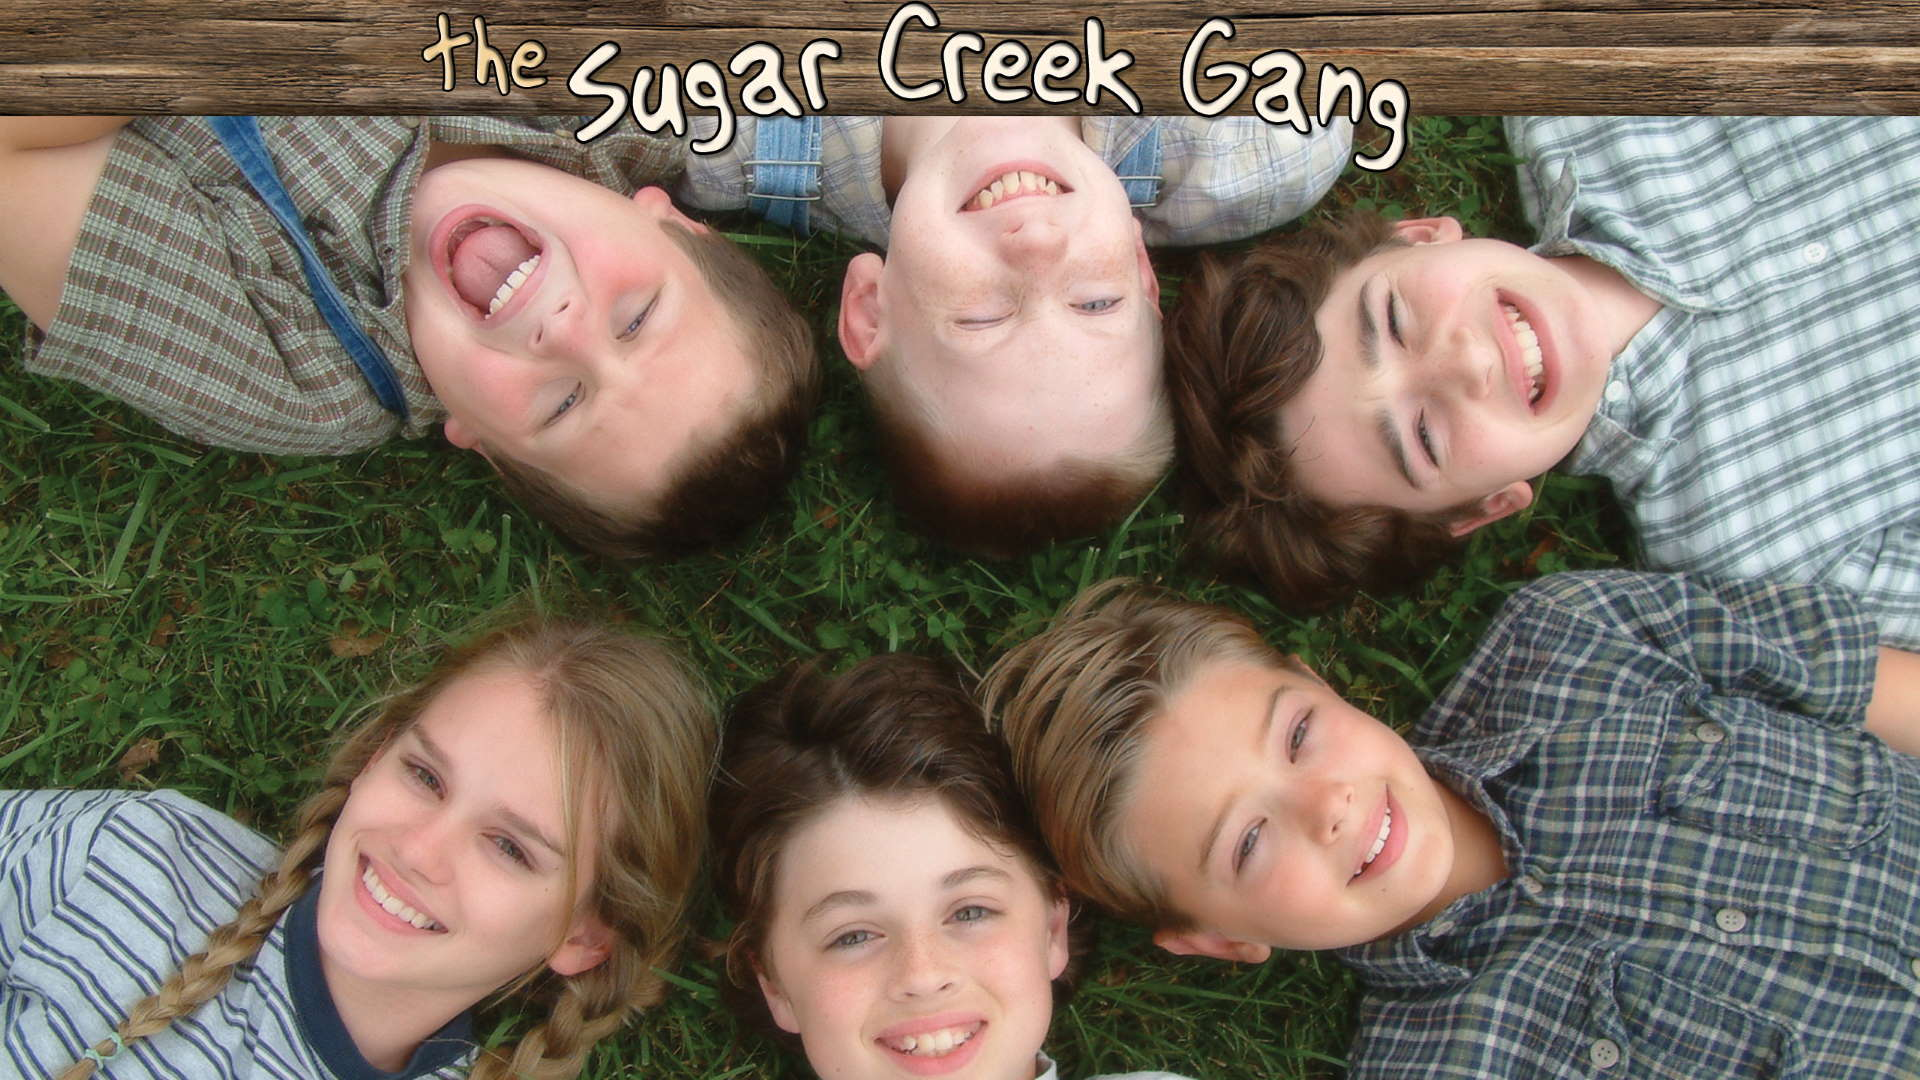 The Sugar Creek Gang Ep 1: Swamp Robber